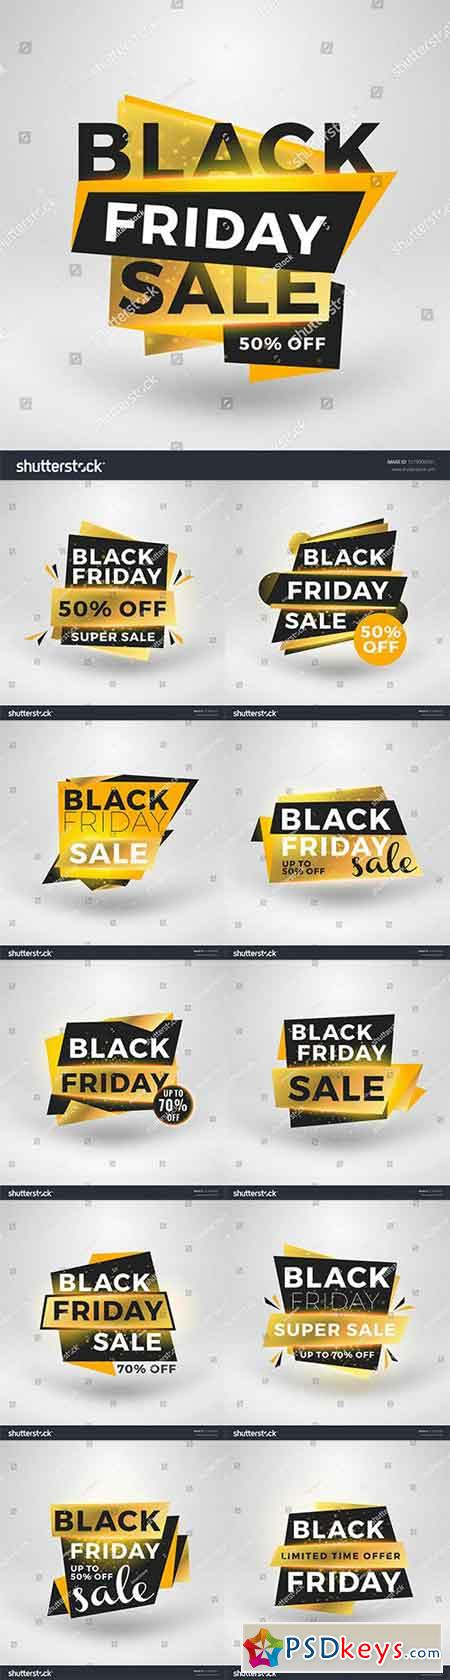 Black Friday sale stickers. Discount banners